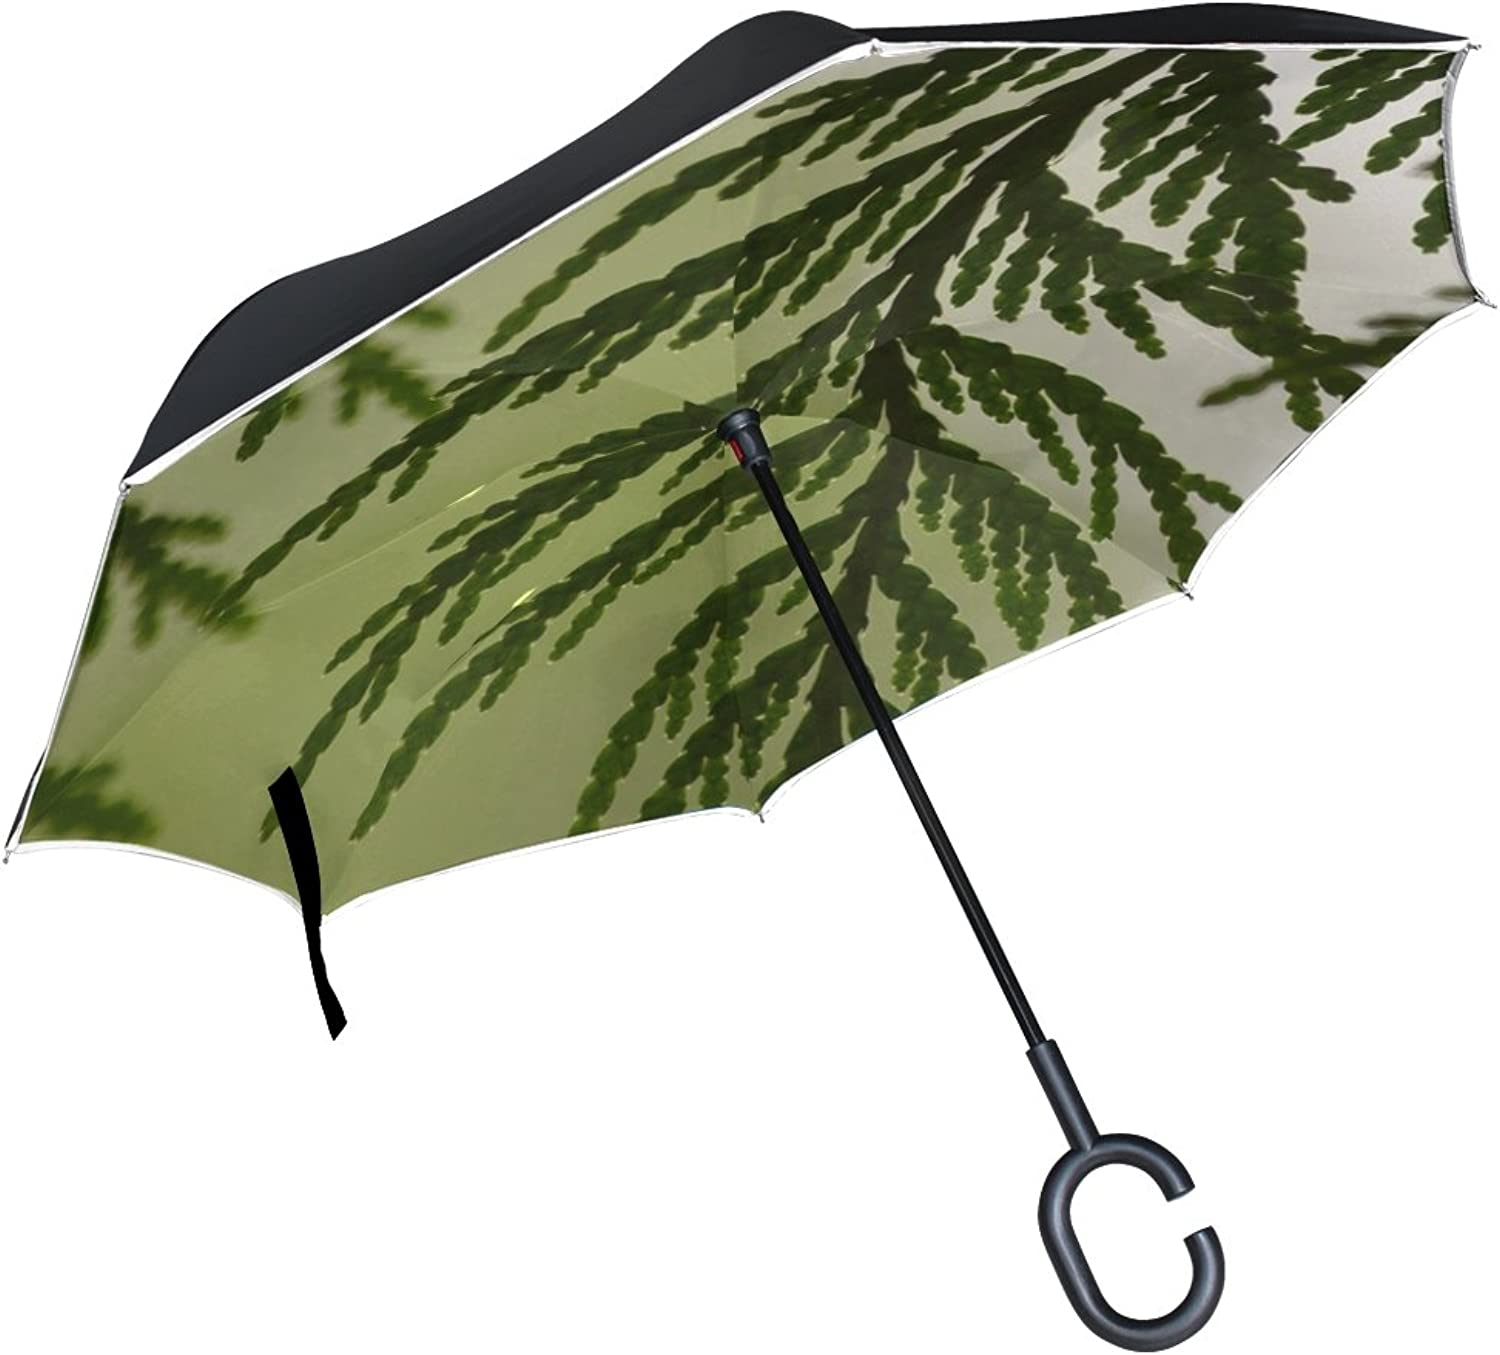 Double Layer Ingreened Cedar Leaf Leaves Boughs Plant Nature Tree Umbrellas Reverse Folding Umbrella Windproof Uv Predection Big Straight Umbrella for Car Rain Outdoor with CShaped Handle